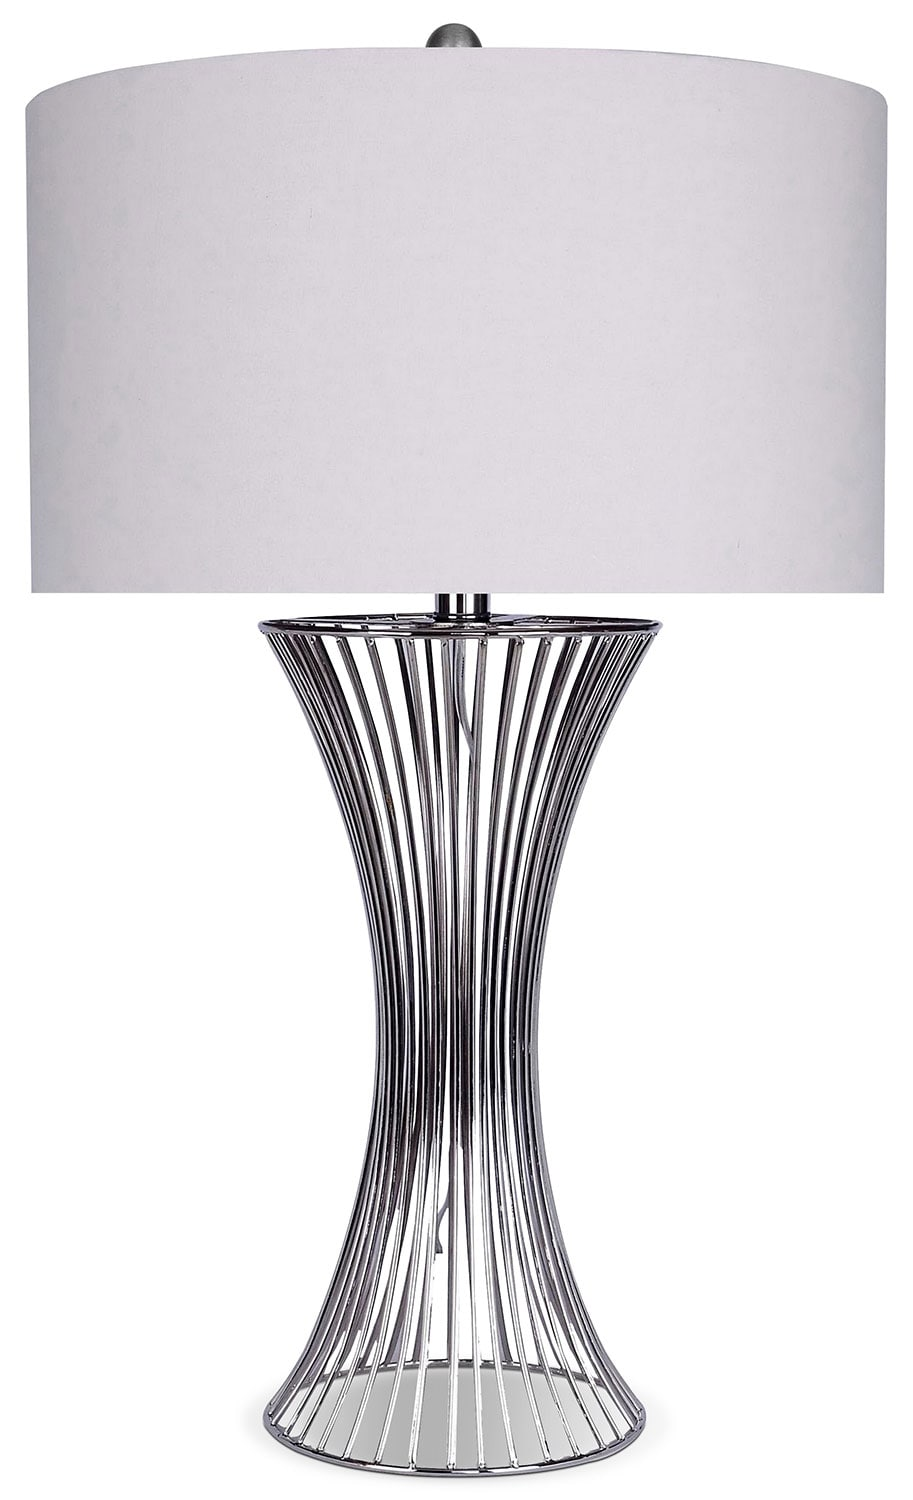 Home Accessories - Nickel Cage Table Lamp